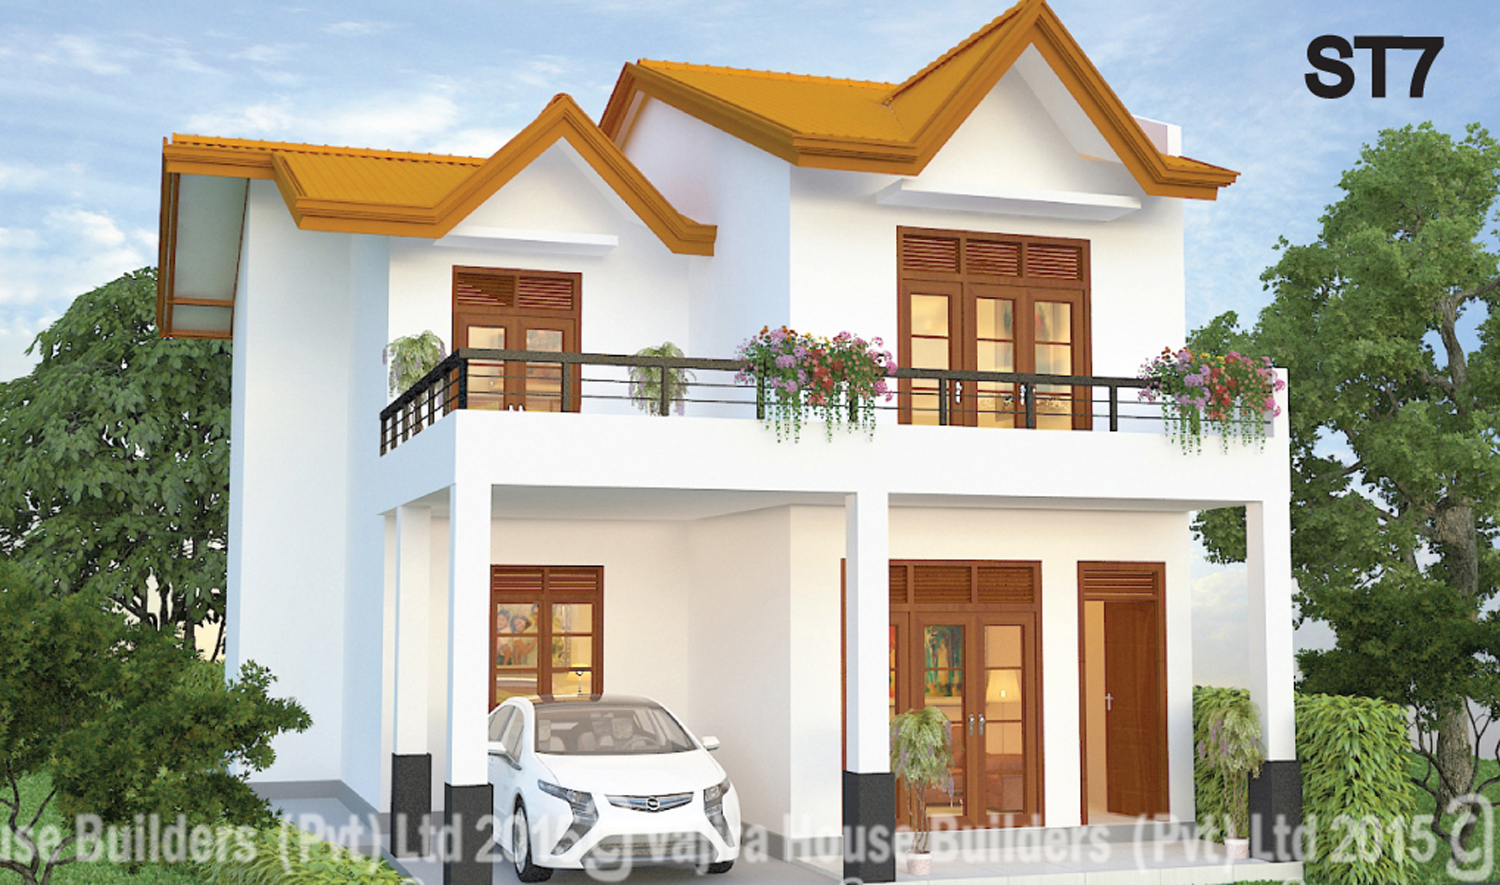 st 7 vajira house builders private limited best house builders